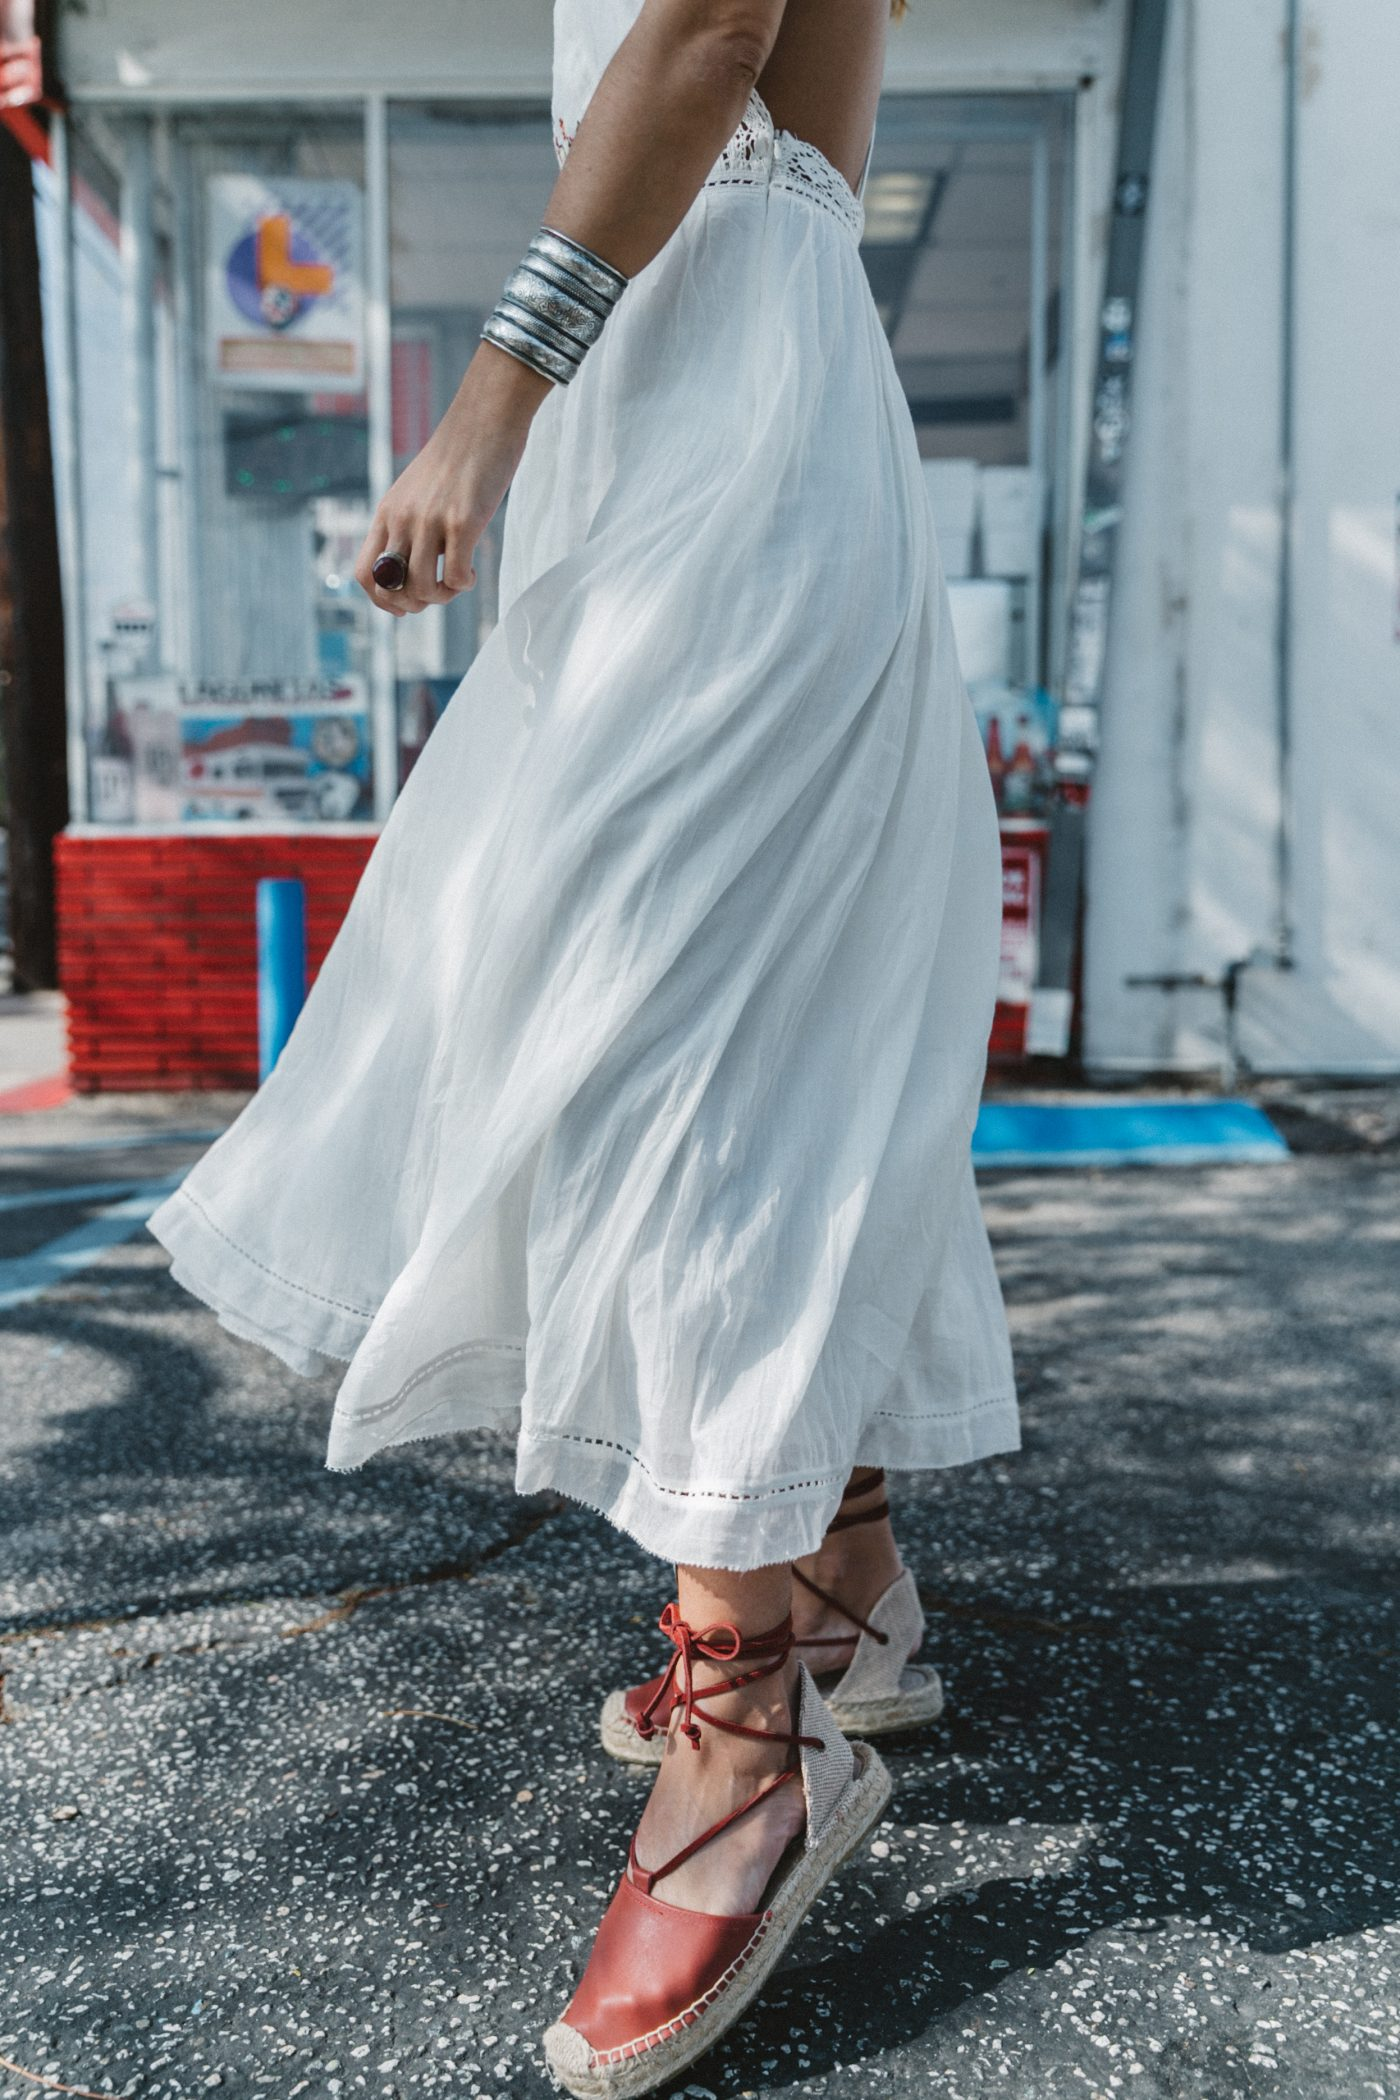 White_Dress-Boho-Soludos_Espadrilles-Backless_Dress-Urban_Outfitters-Los_Angeles-Outfit-Collage_Vintage-62